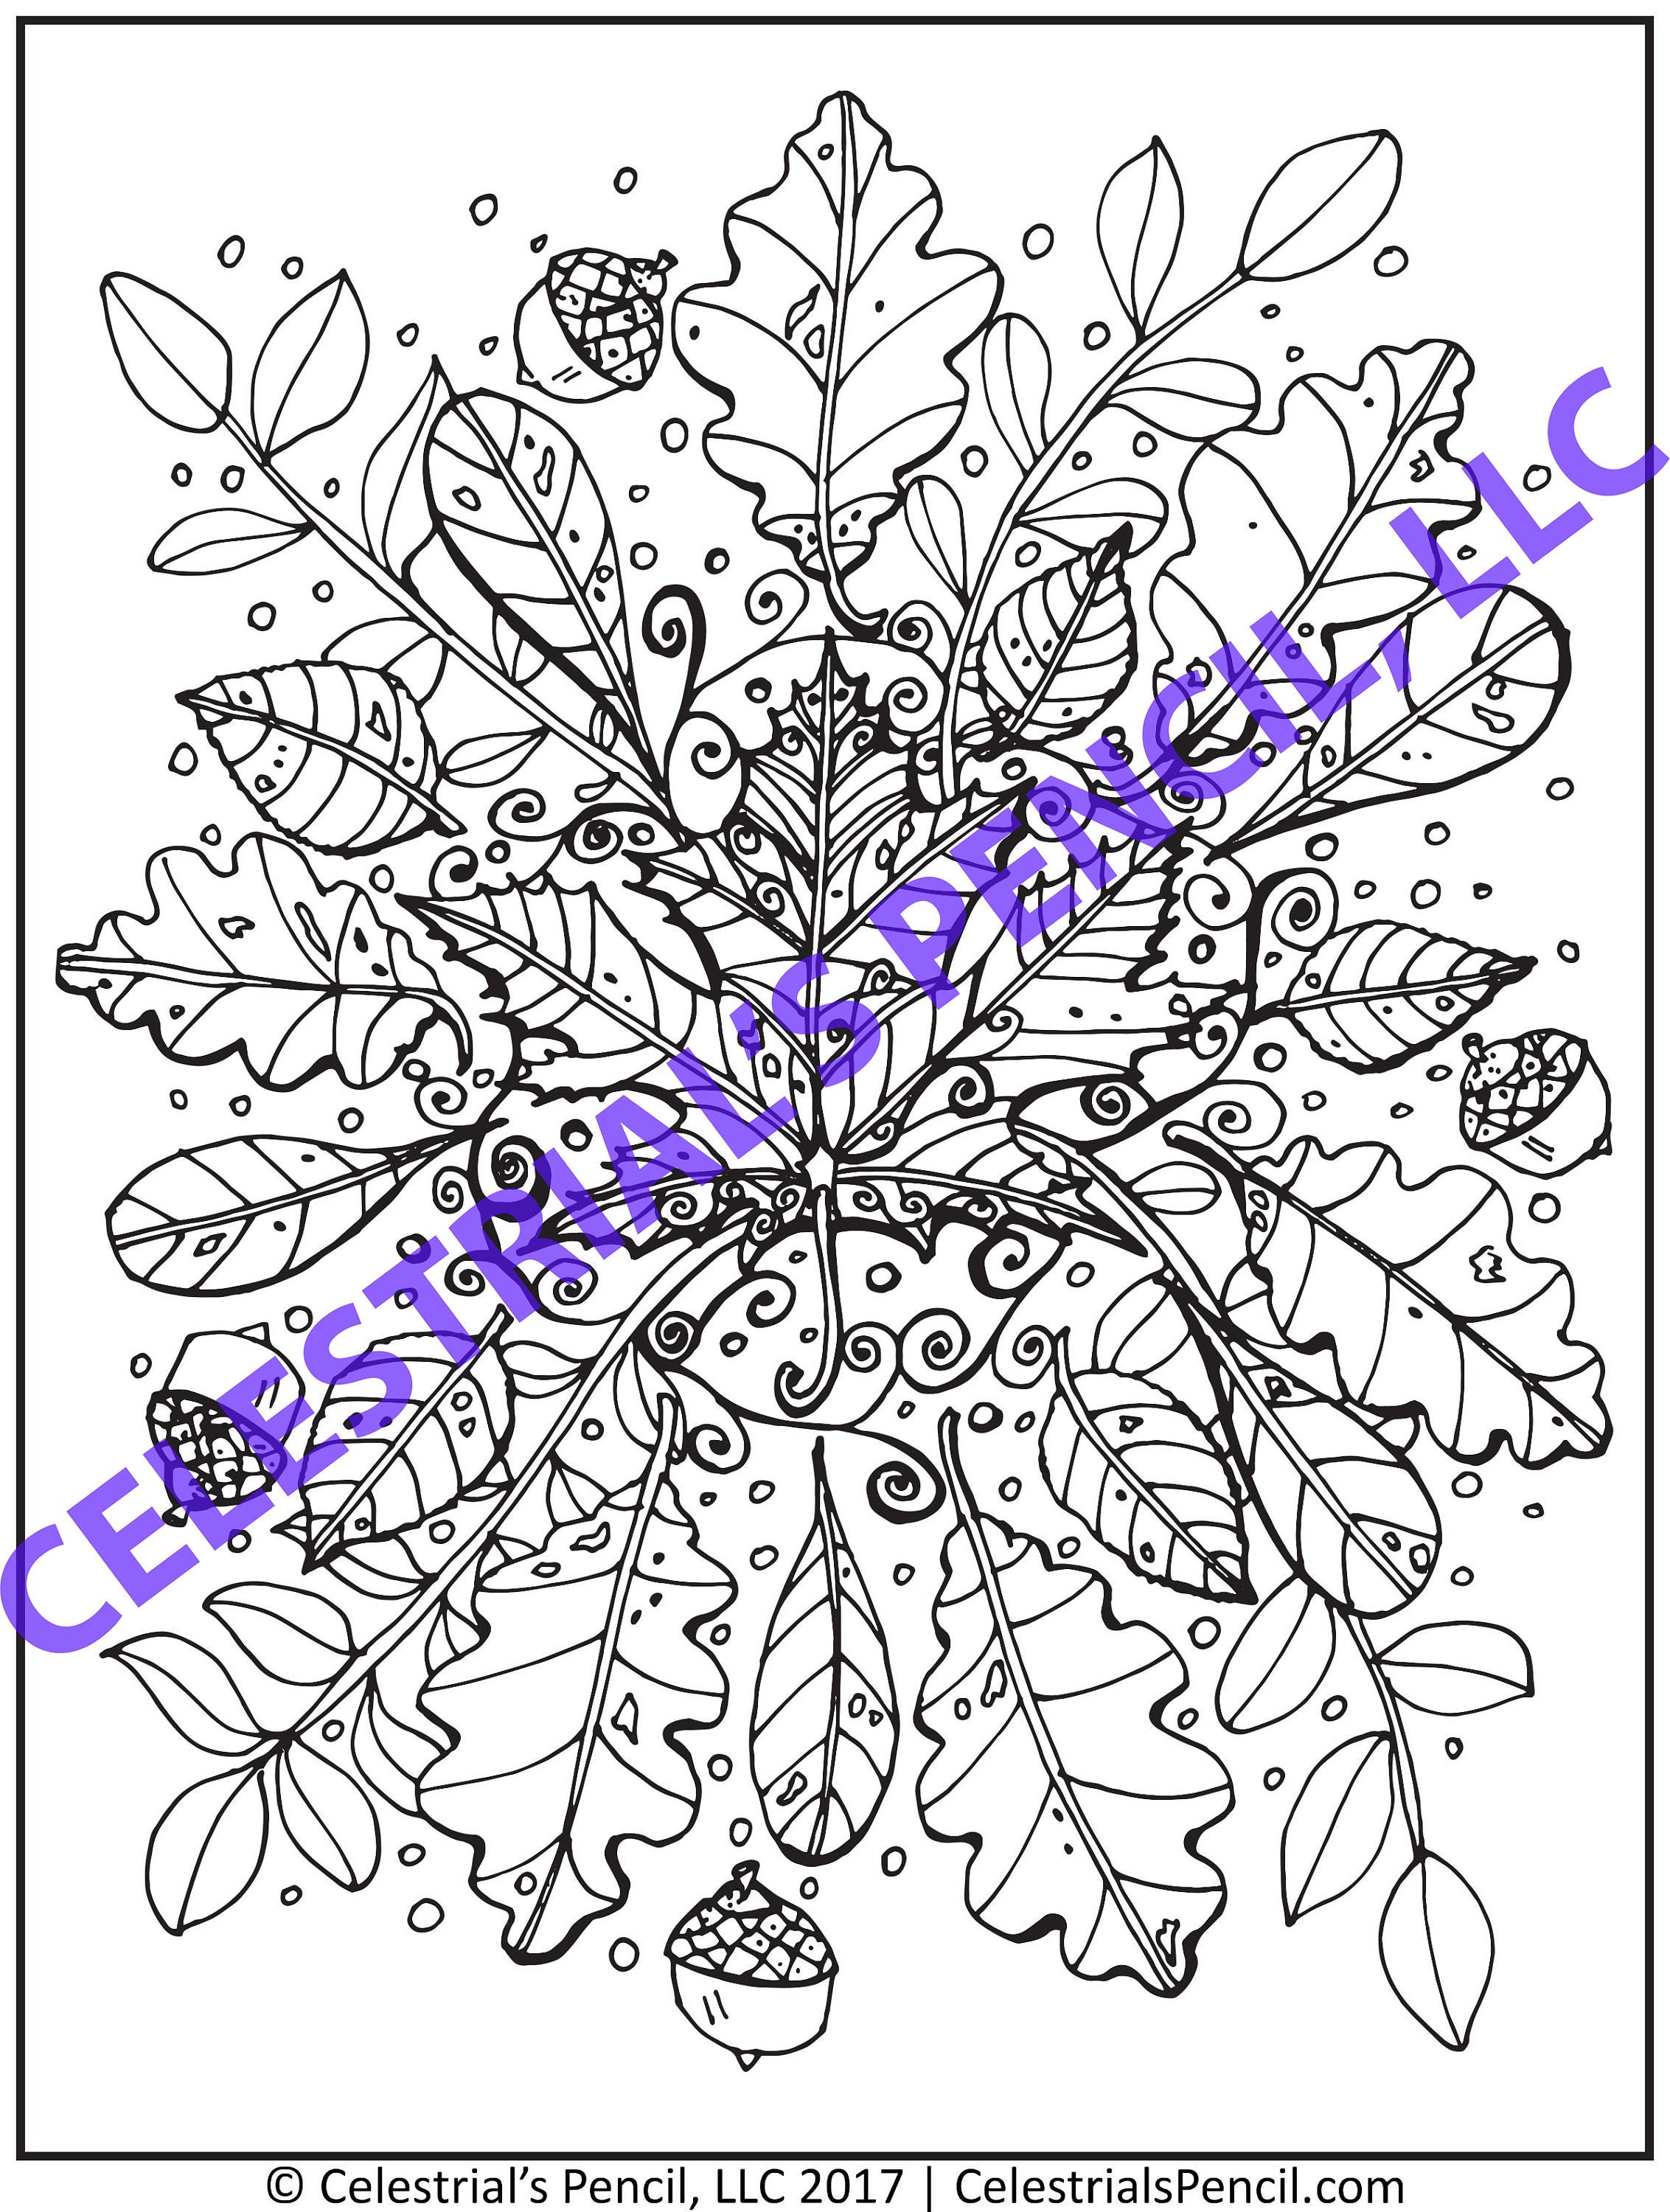 Celestrials Pencil Nature Package Coloring Pages PDF